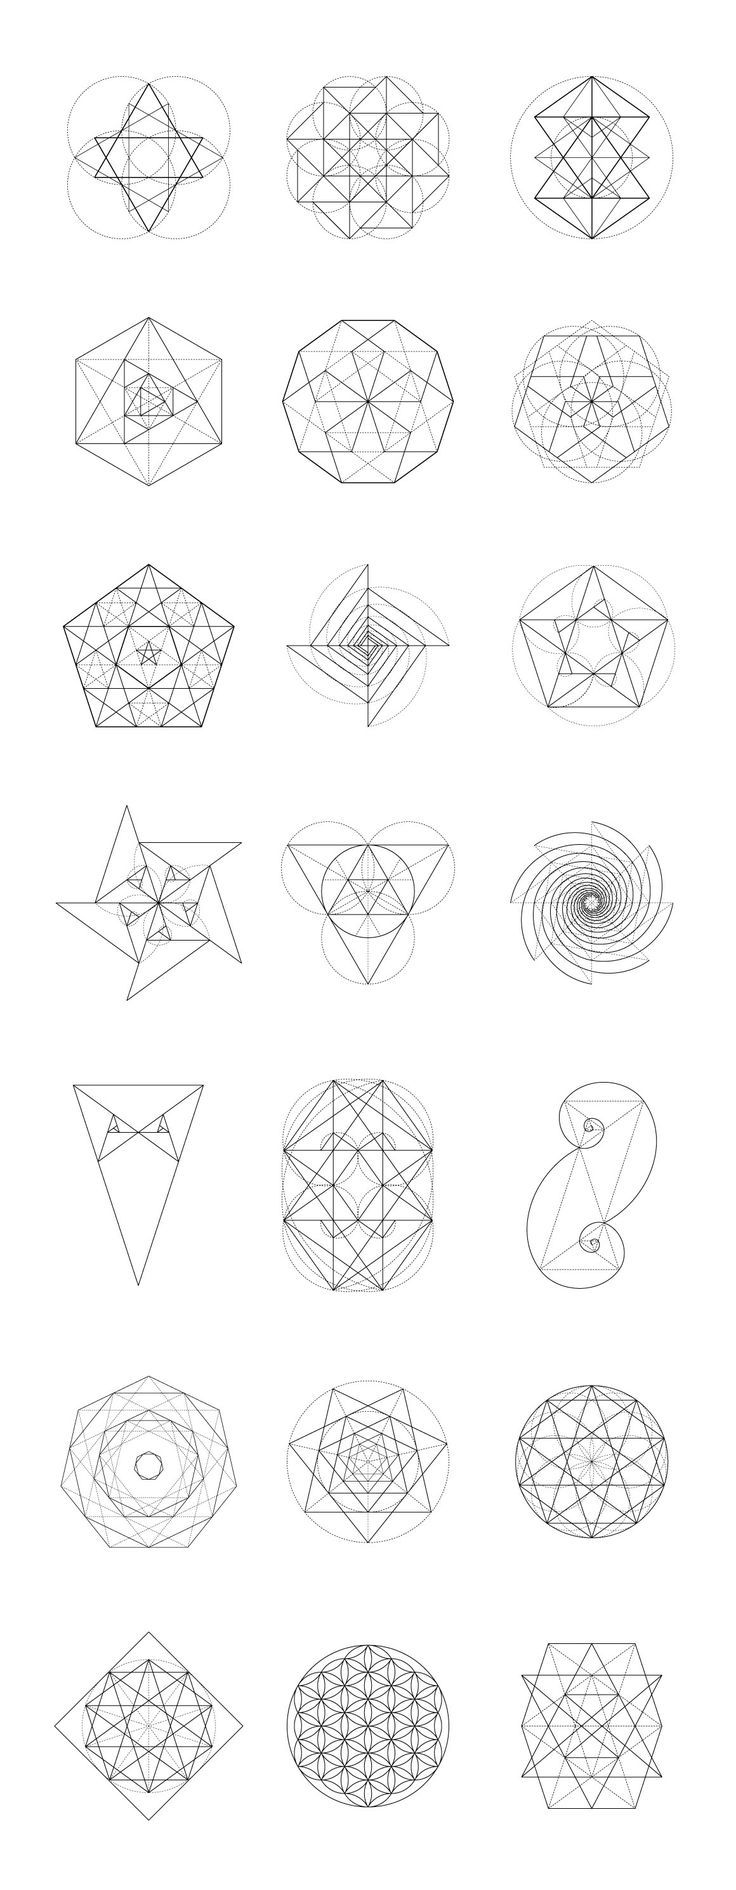 geometrical shapes | sacred shapes & meanings in 2018 | pinterest